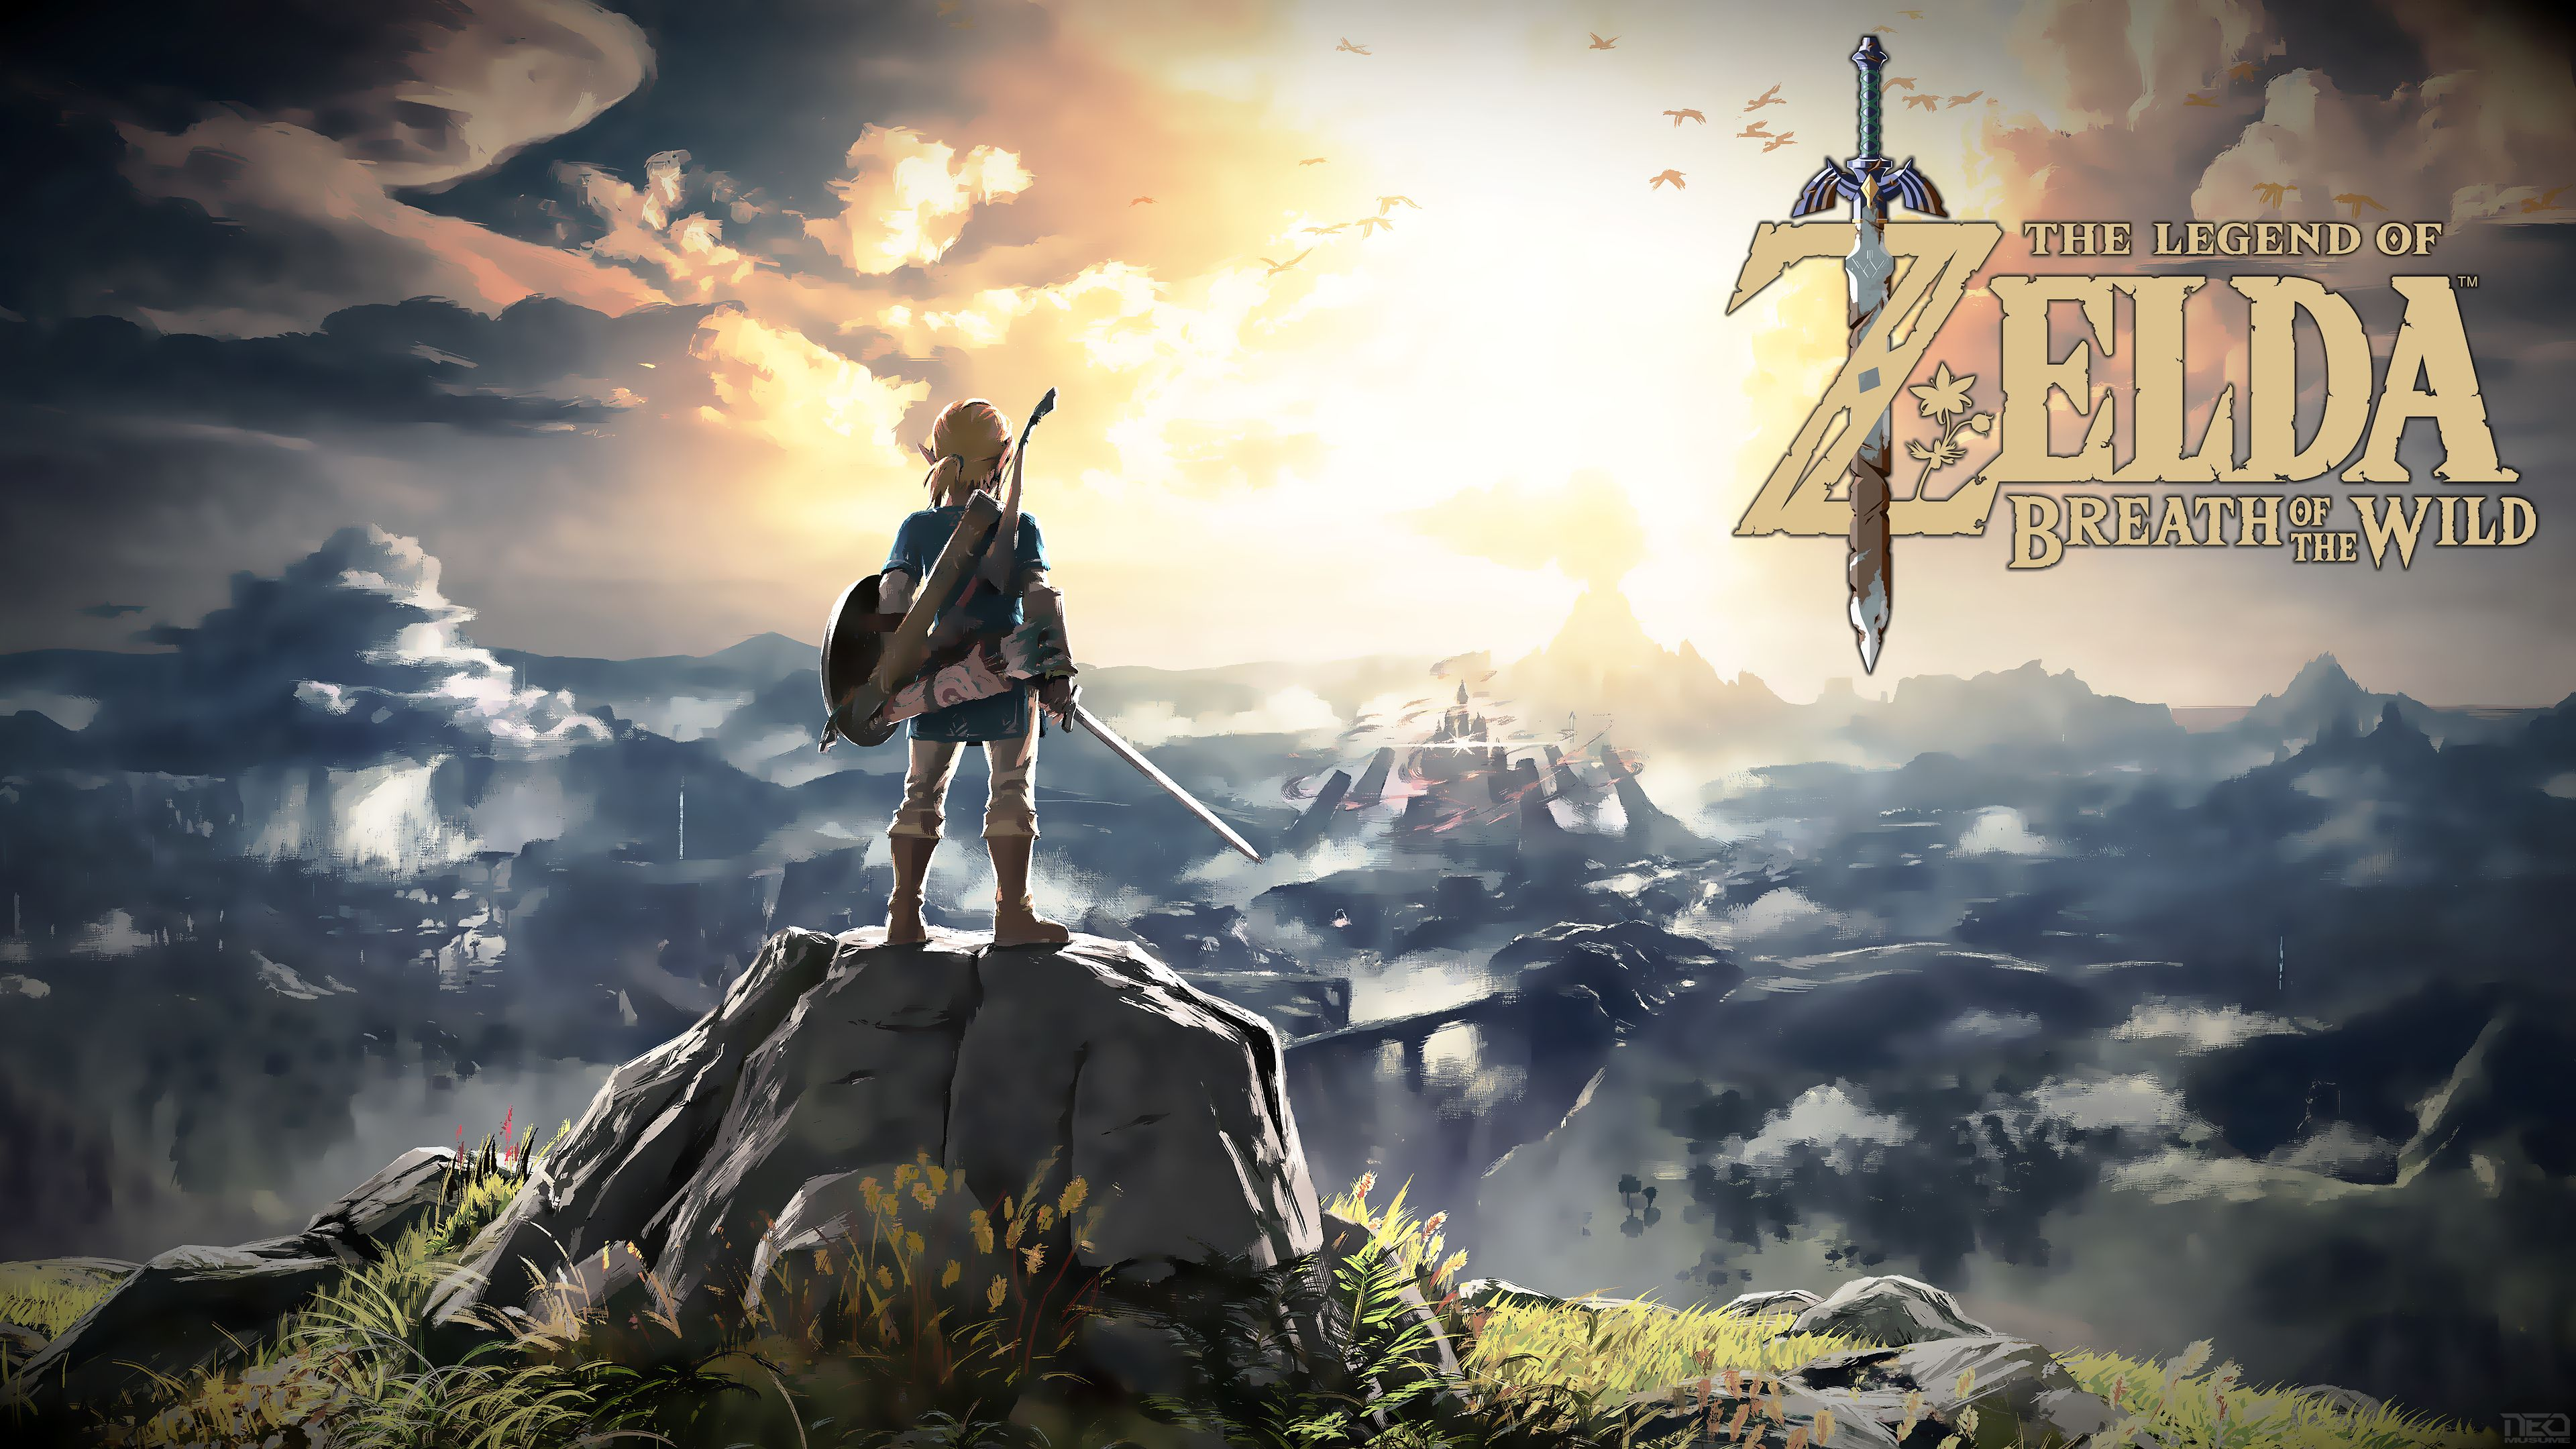 Deviantart More Like The Legend Of Zelda Breath Of The Wild Zelda